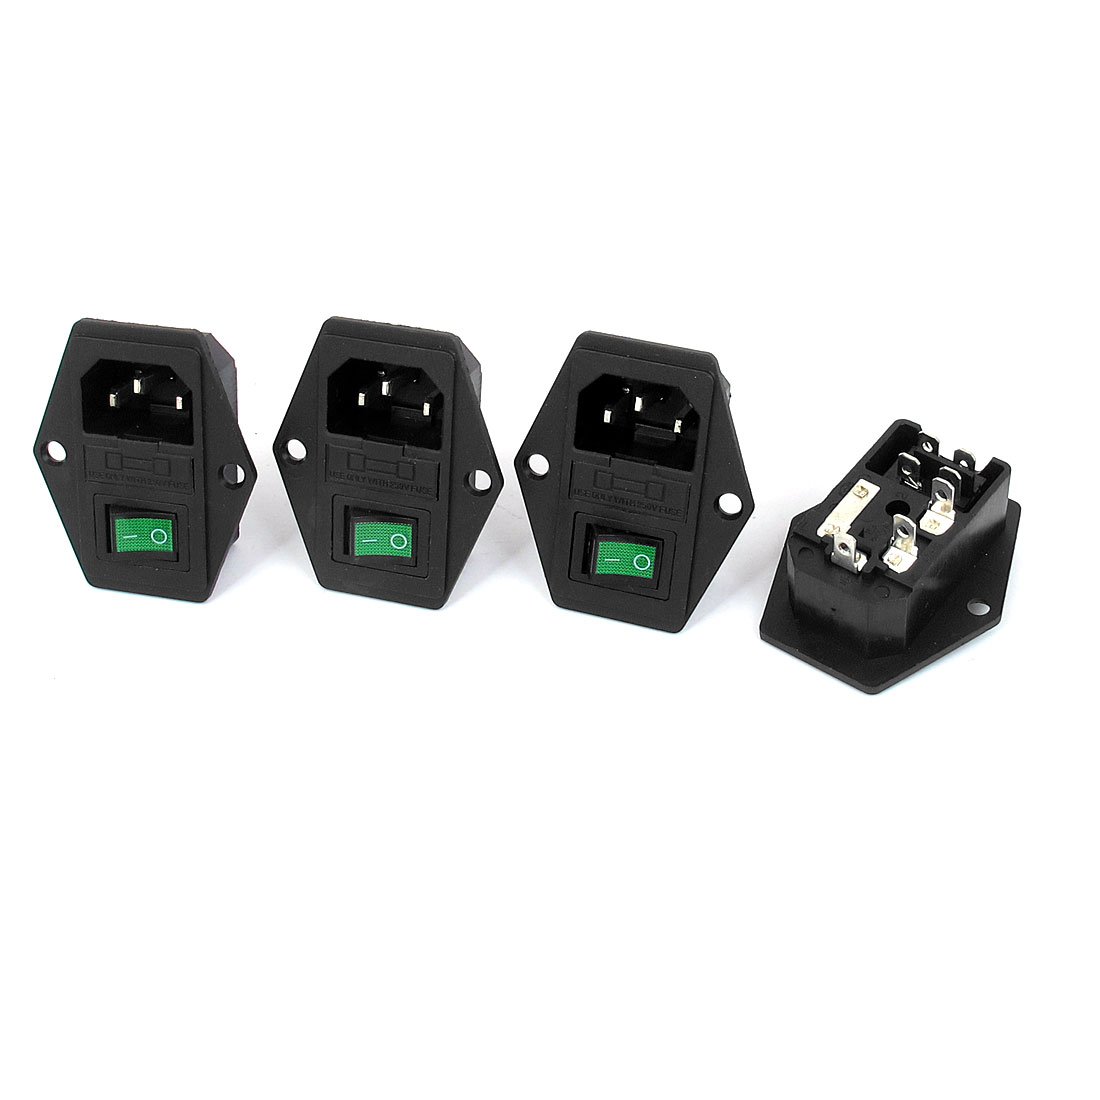 AC 250V 15A IEC320 C14 Inlet Power Socket Green Lamp Solder Rocker Switch Fuse Holder 4pcs